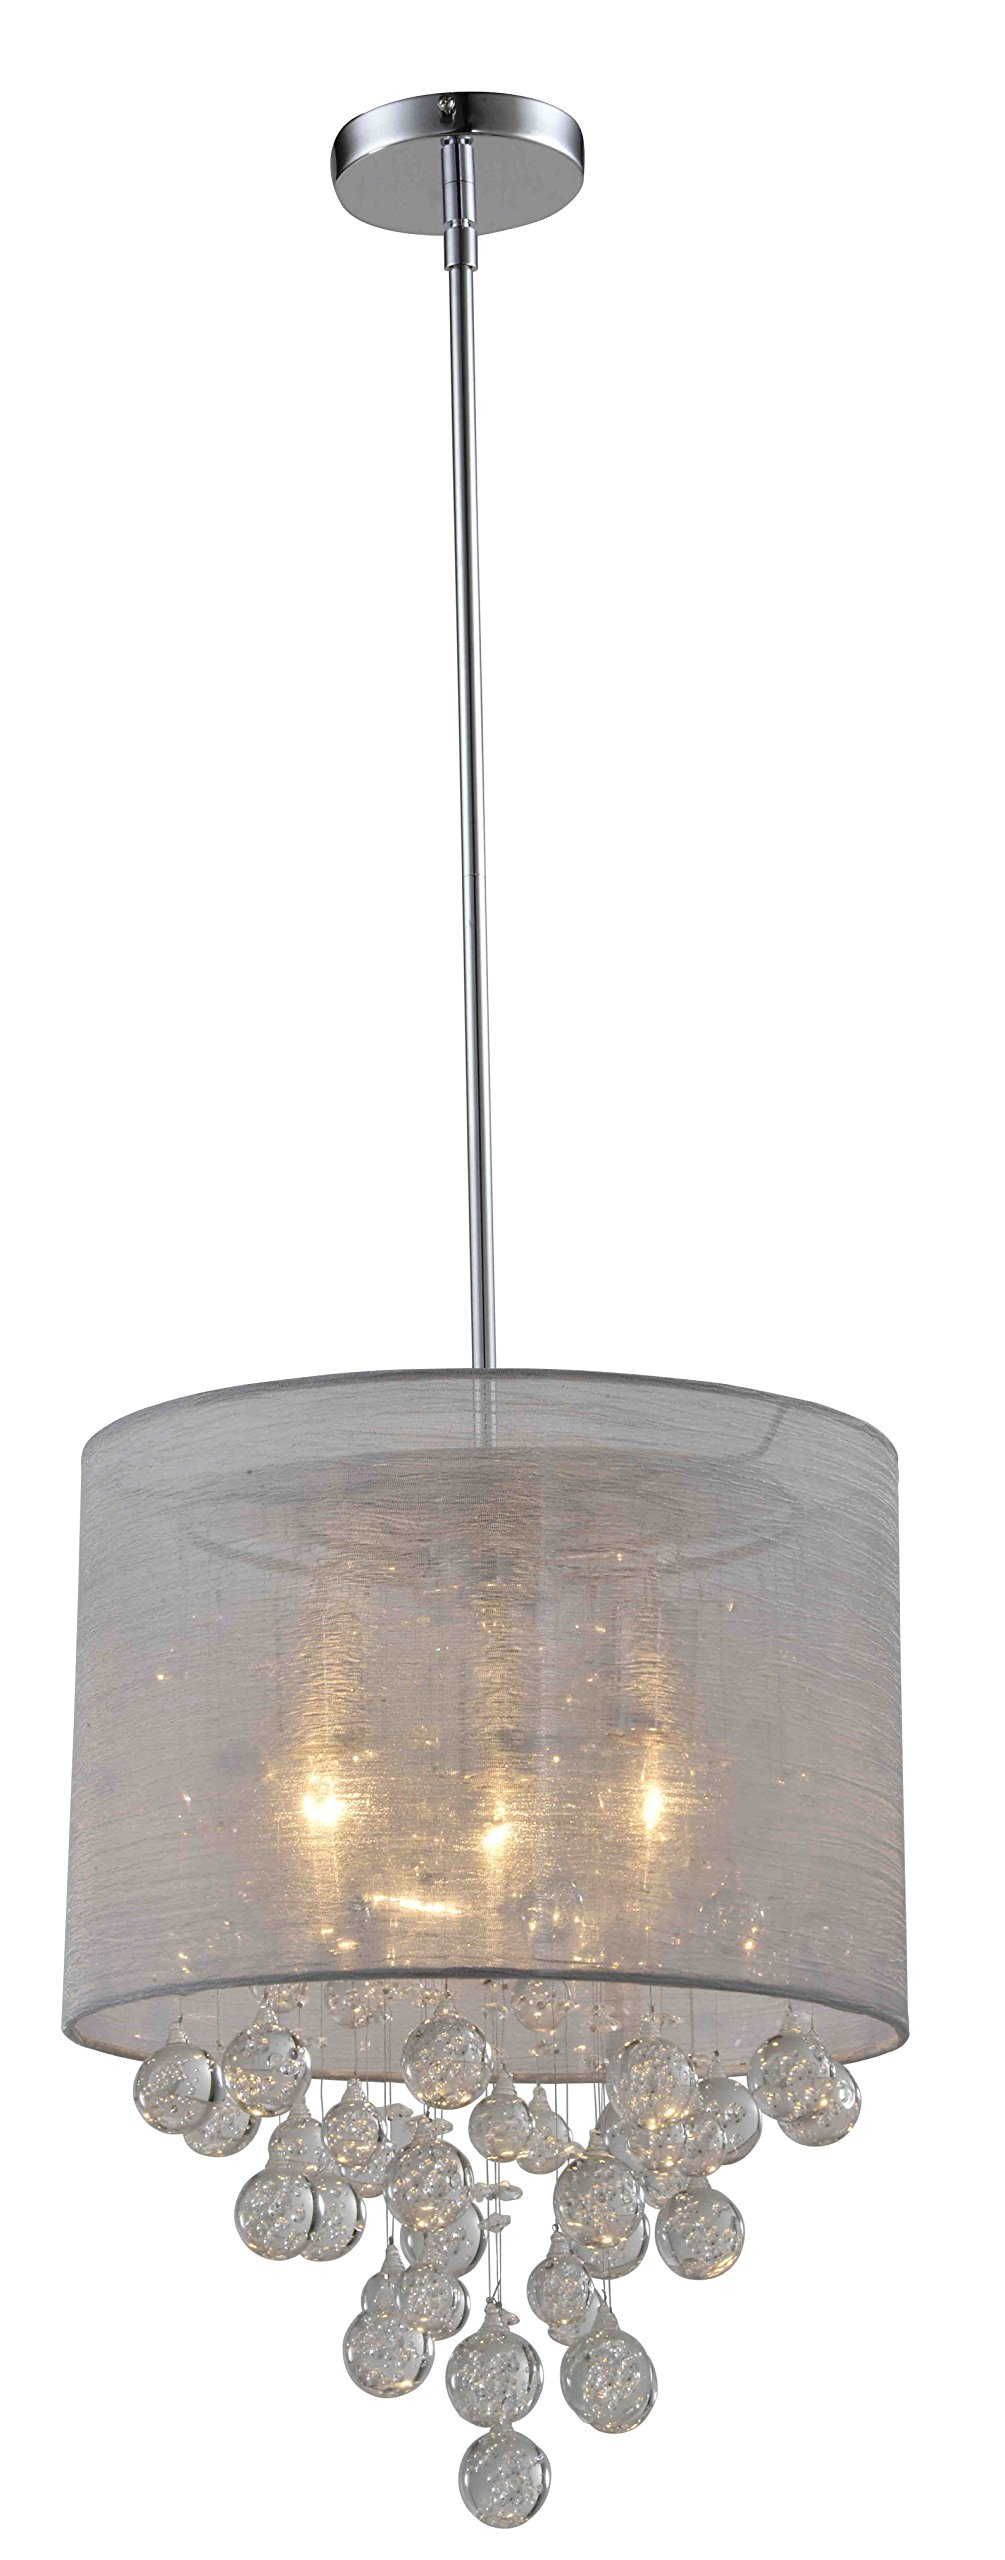 Artiva USA A501104 Modern, Comtemporary Charlotte Textured Silk Shade 3-Light Crystal Chandelier with Bubbles Glass Ball, 15'Dia 18.5'H, Silver Chrome